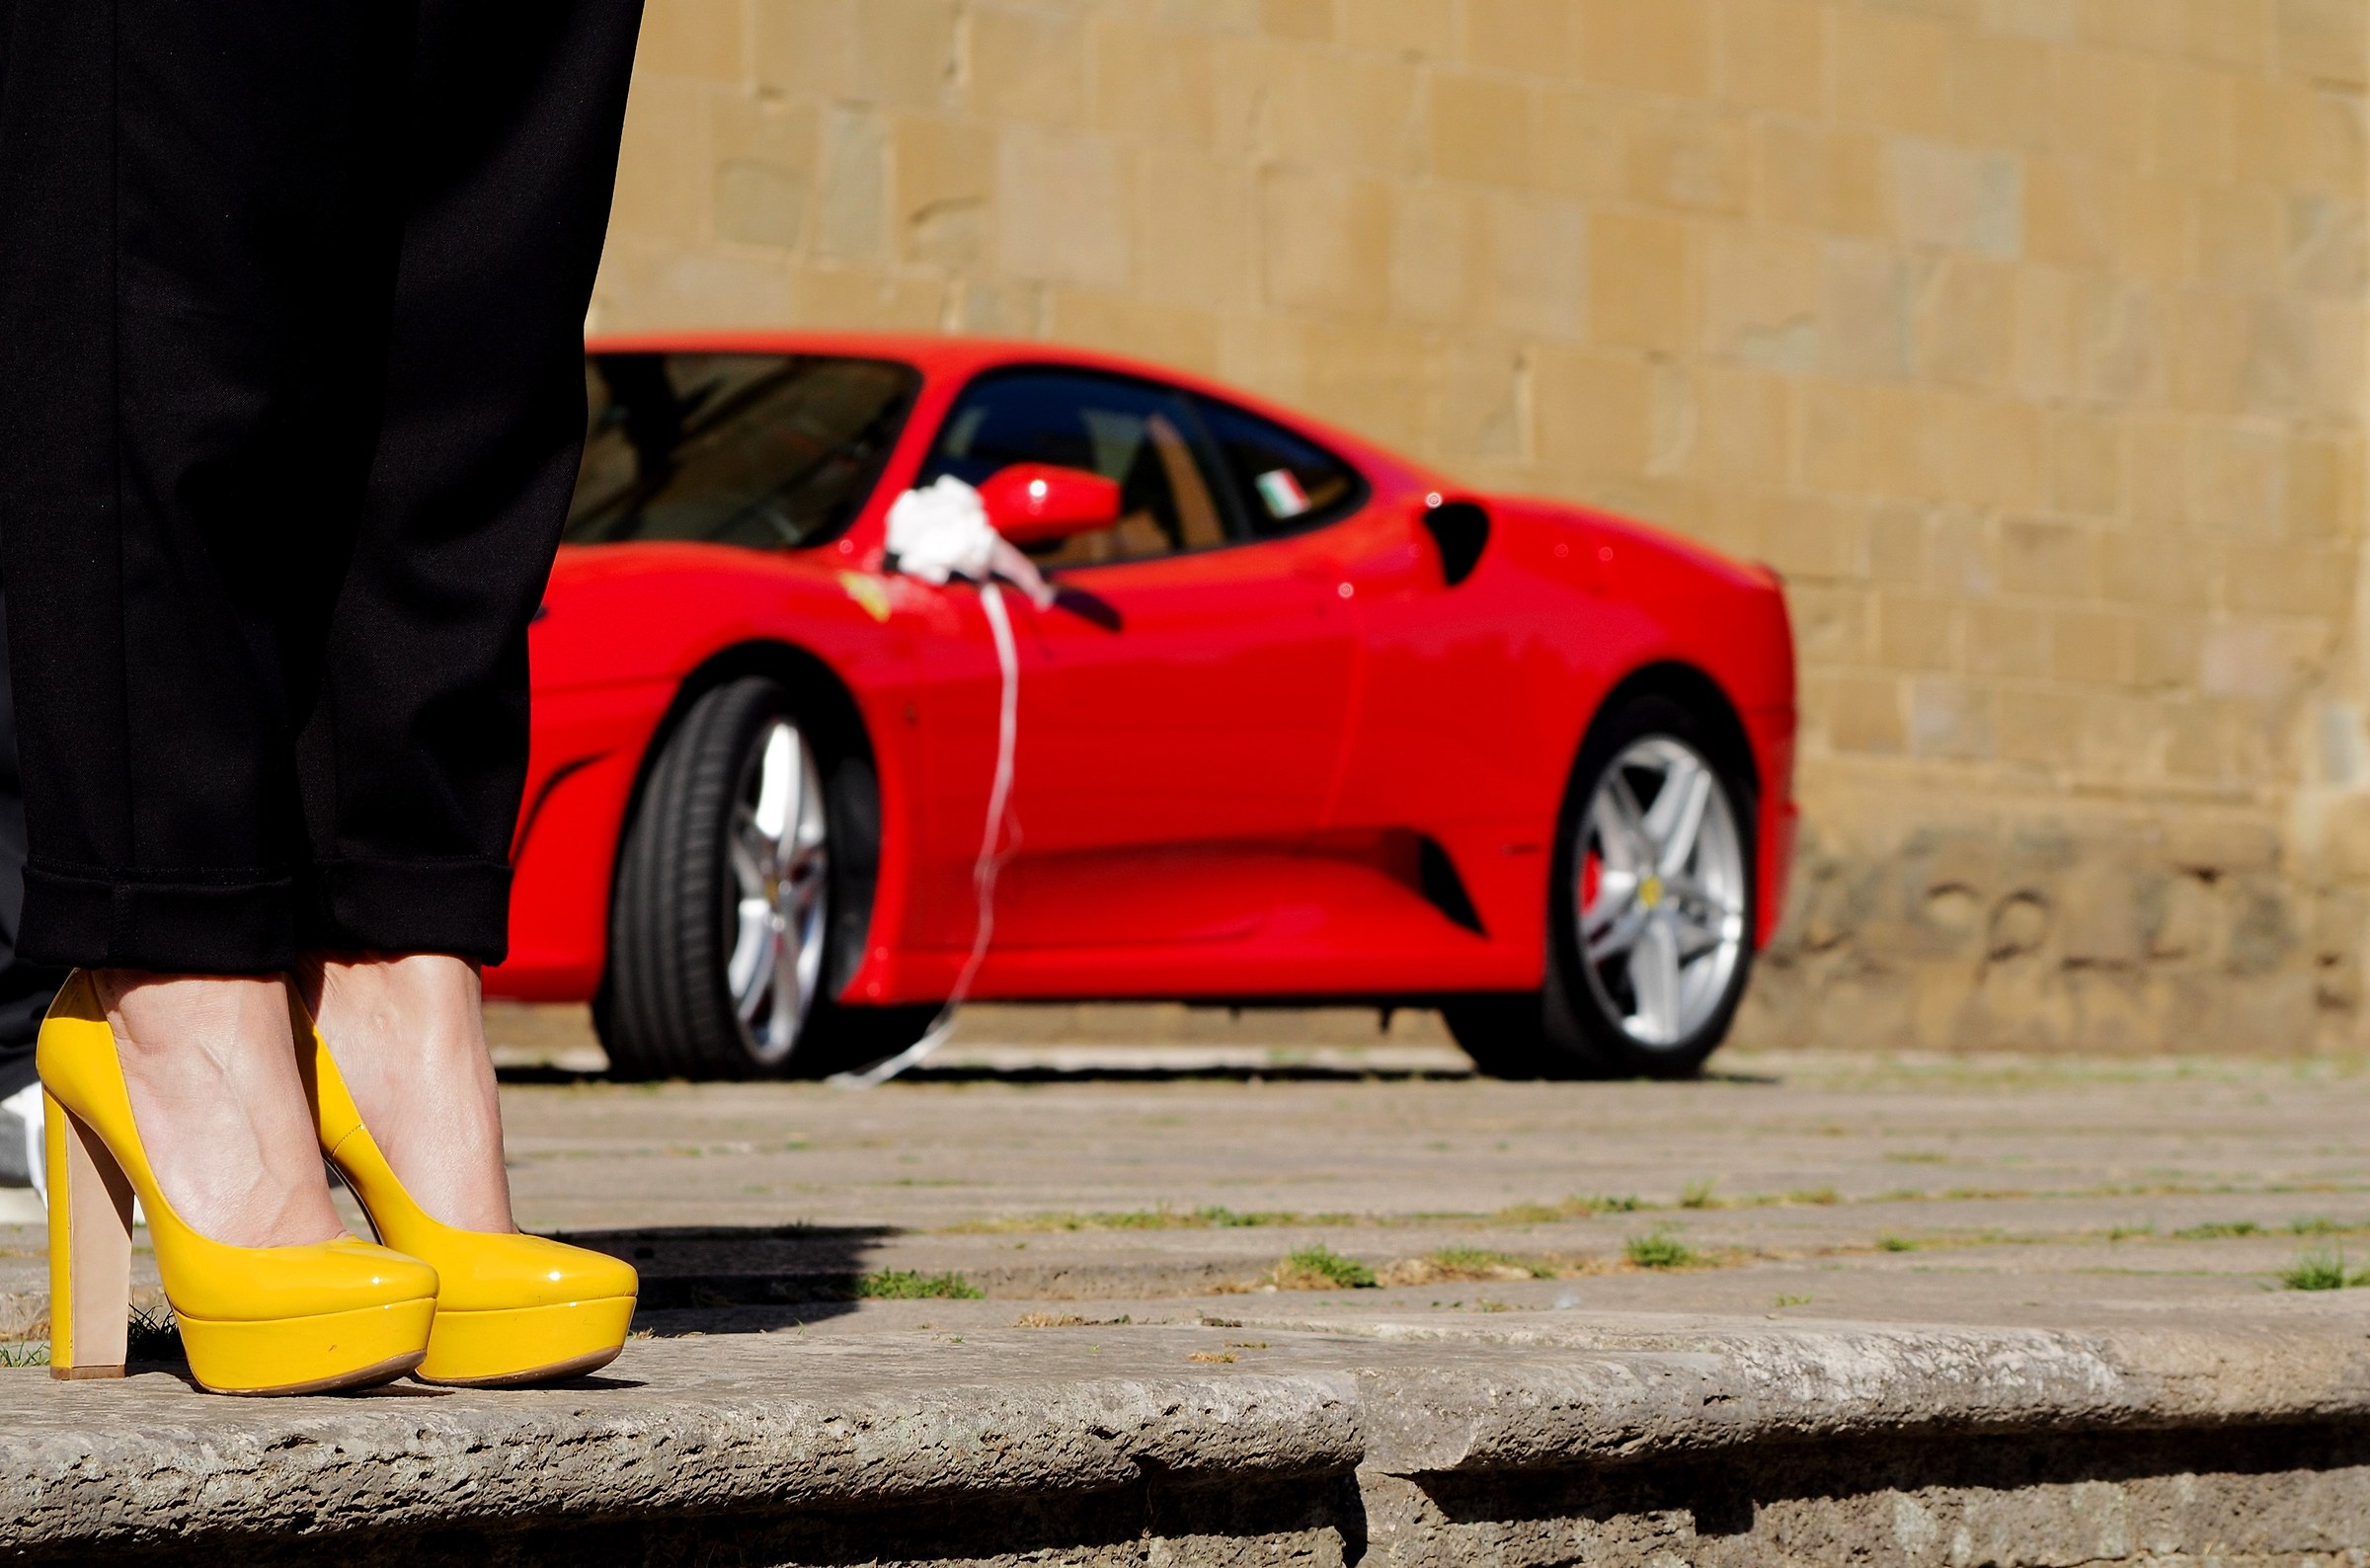 Red Head & Yellow Shoes...